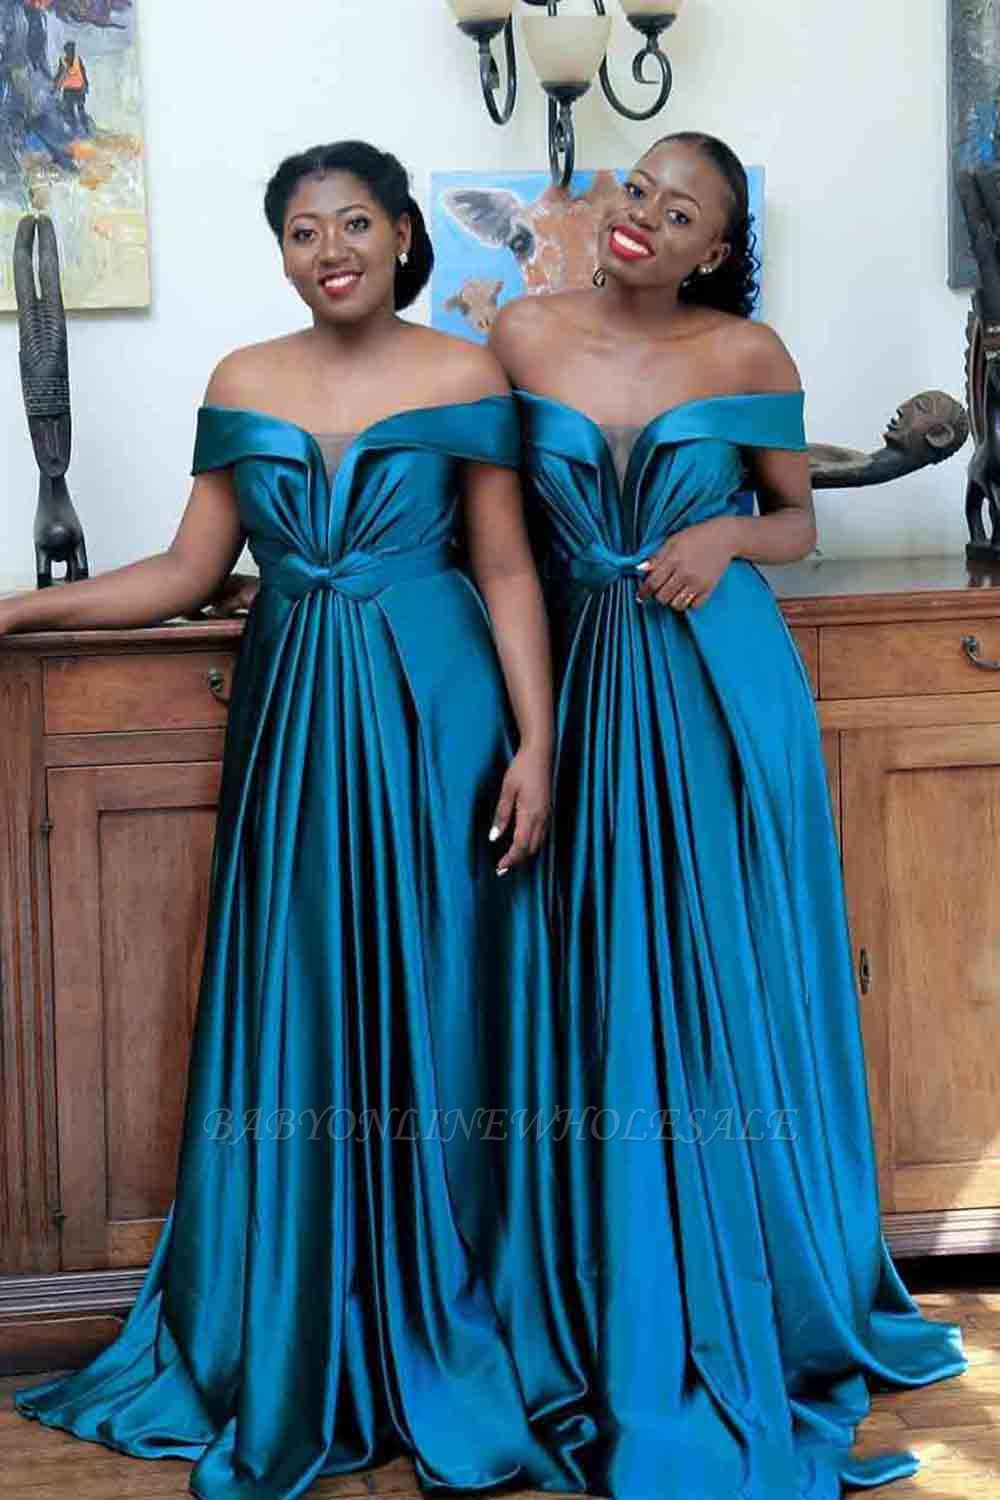 Sexy New Off-shoulder Sweep Train Bridesmaid Dresses With Bow Belt | Long Blue Wedding Party Dresses